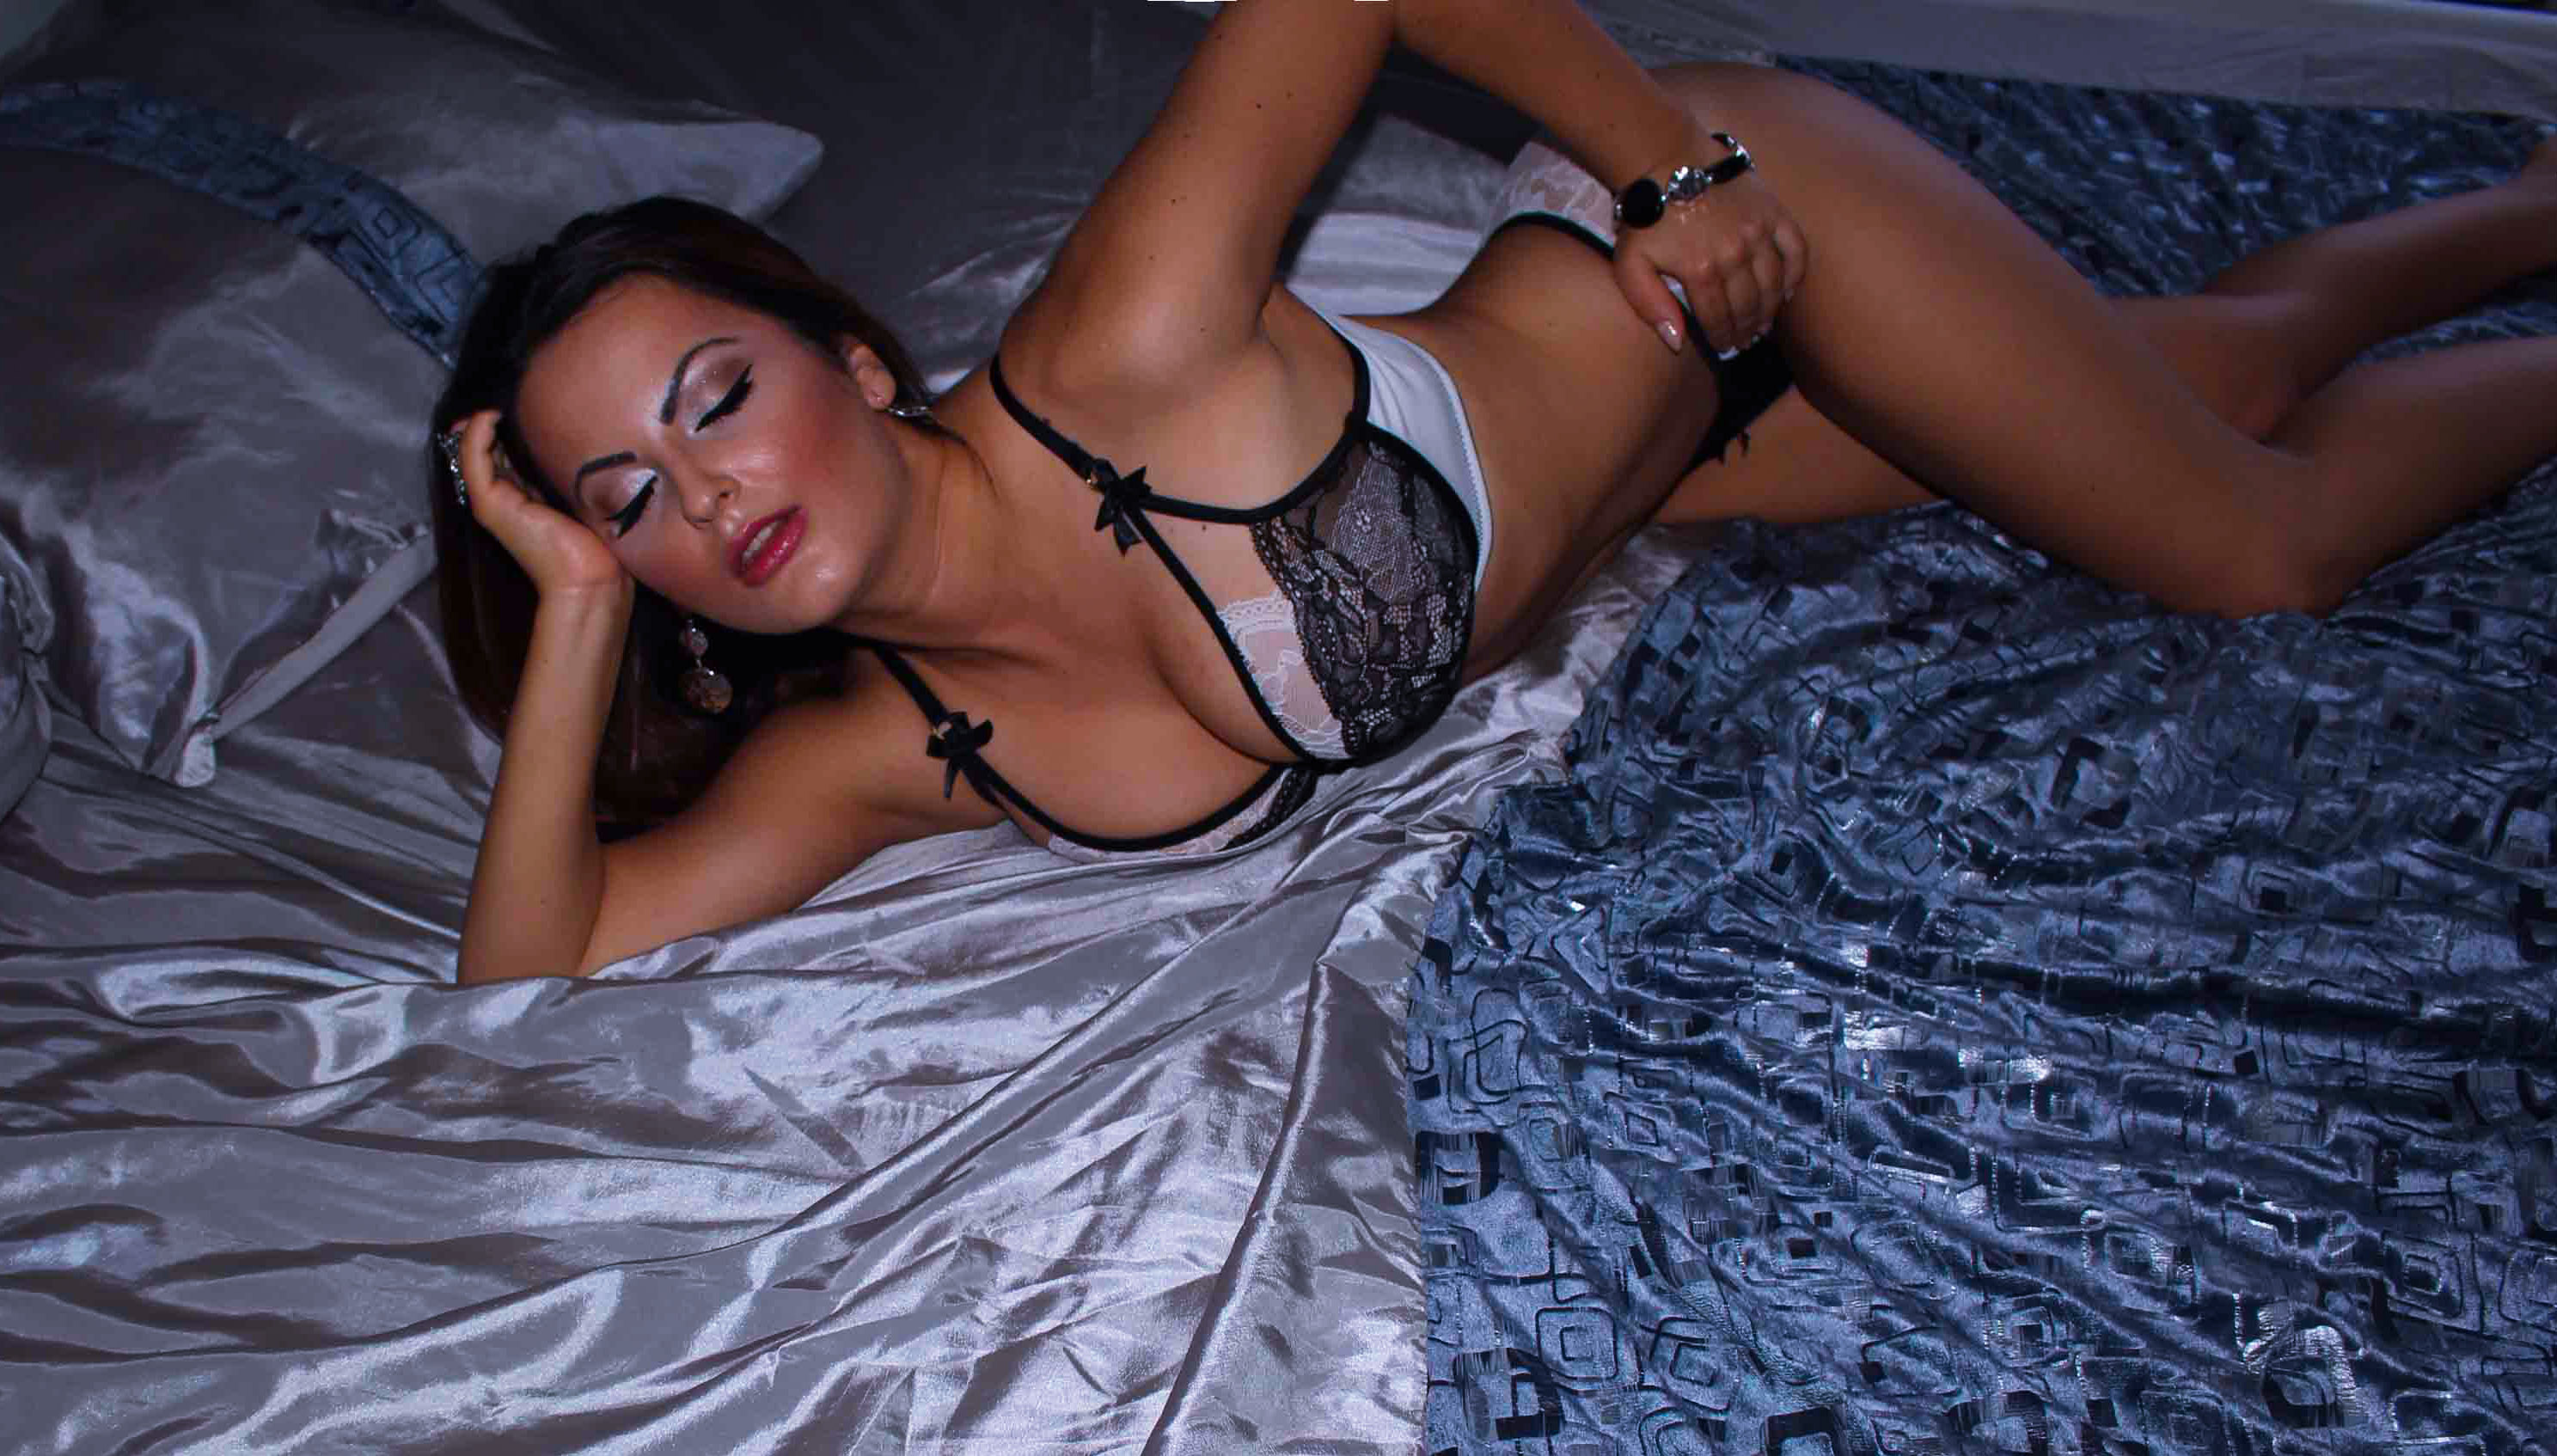 escort massage lolland falster swingerklub tucan